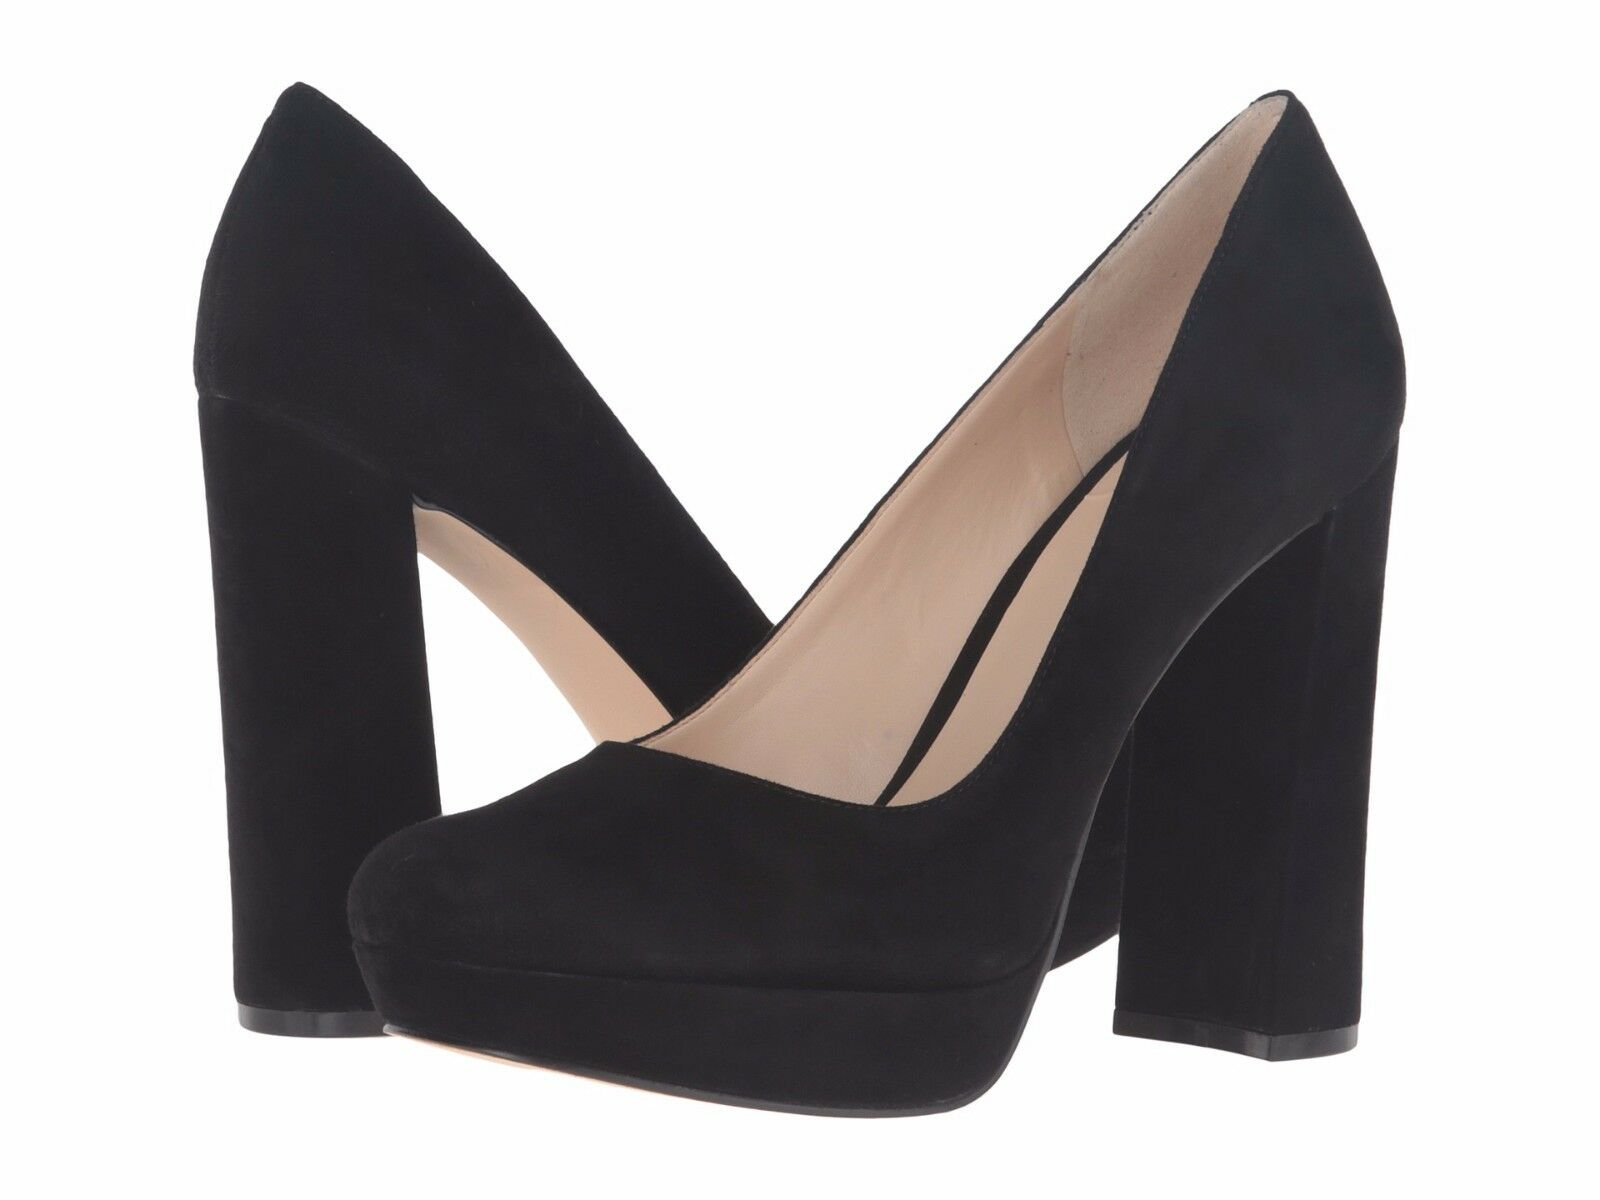 Nine West Delay 10 Black Suede Platform Round Toe Block Heel Dress Pump New